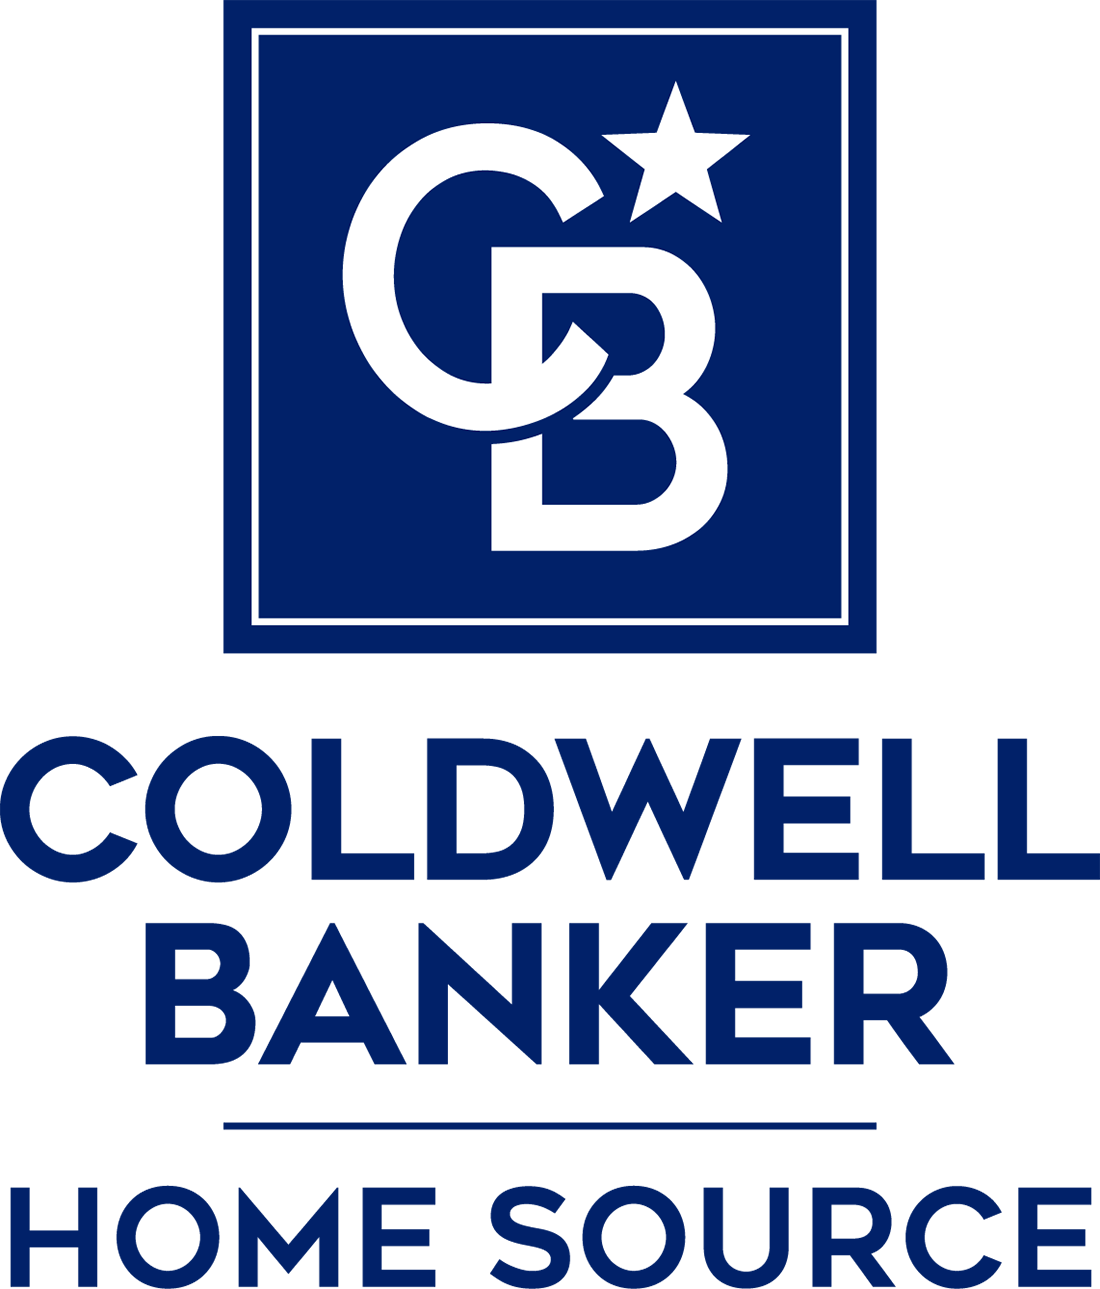 Bob Basen - Coldwell Banker Home Source Logo